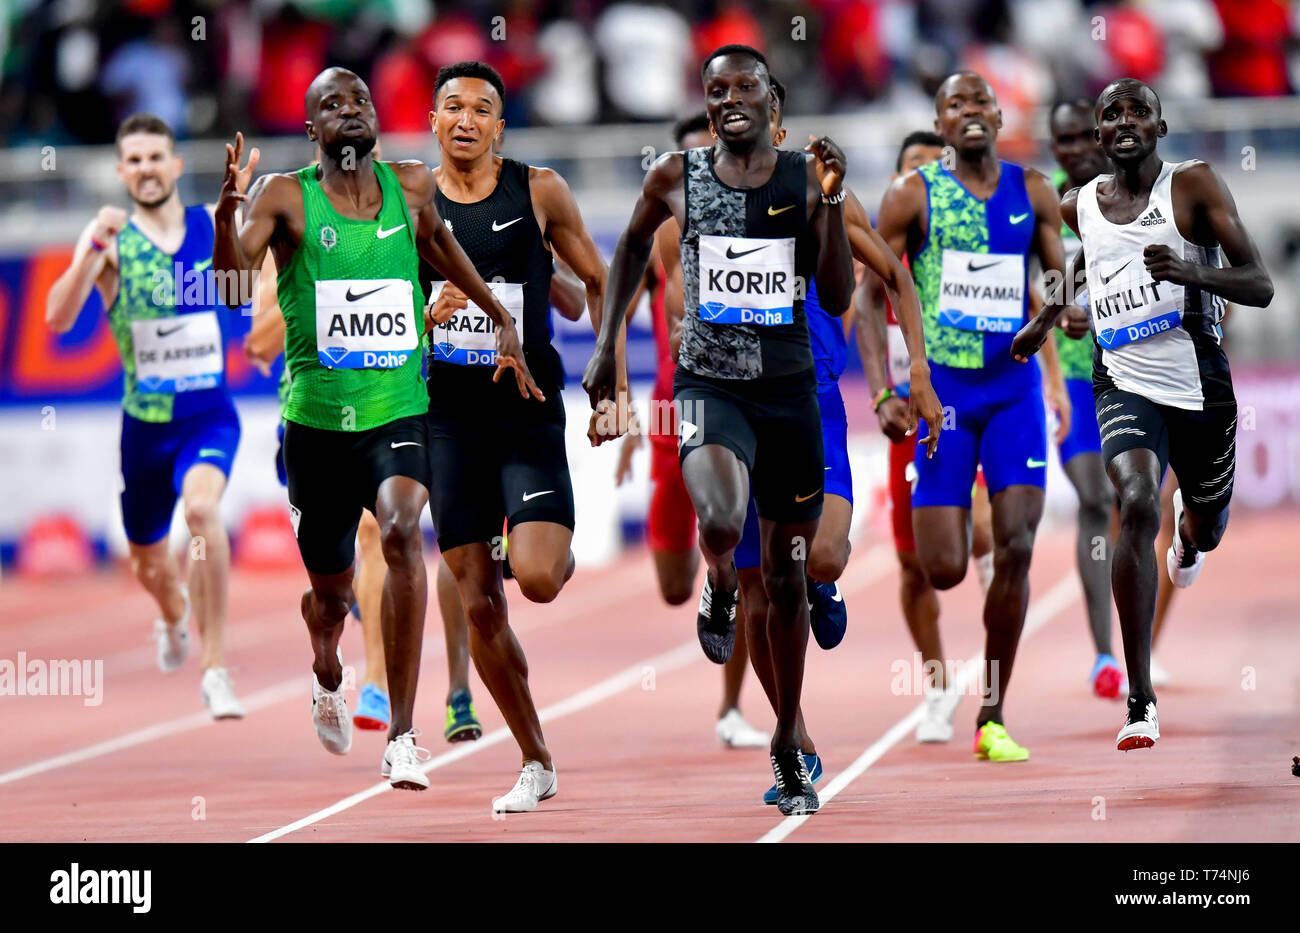 Doha, Qatar. 3rd May, 2019. Nijel Amos (L front) of Botswana competes during the men's 800m final at 2019 IAAF Diamond League at Khalifa International Stadium in Doha, Qatar, May 3, 2019. Nijel Amos won the gold medal with 1 minute and 44.29 seconds. Credit: Nikku/Xinhua/Alamy Live News - Stock Image